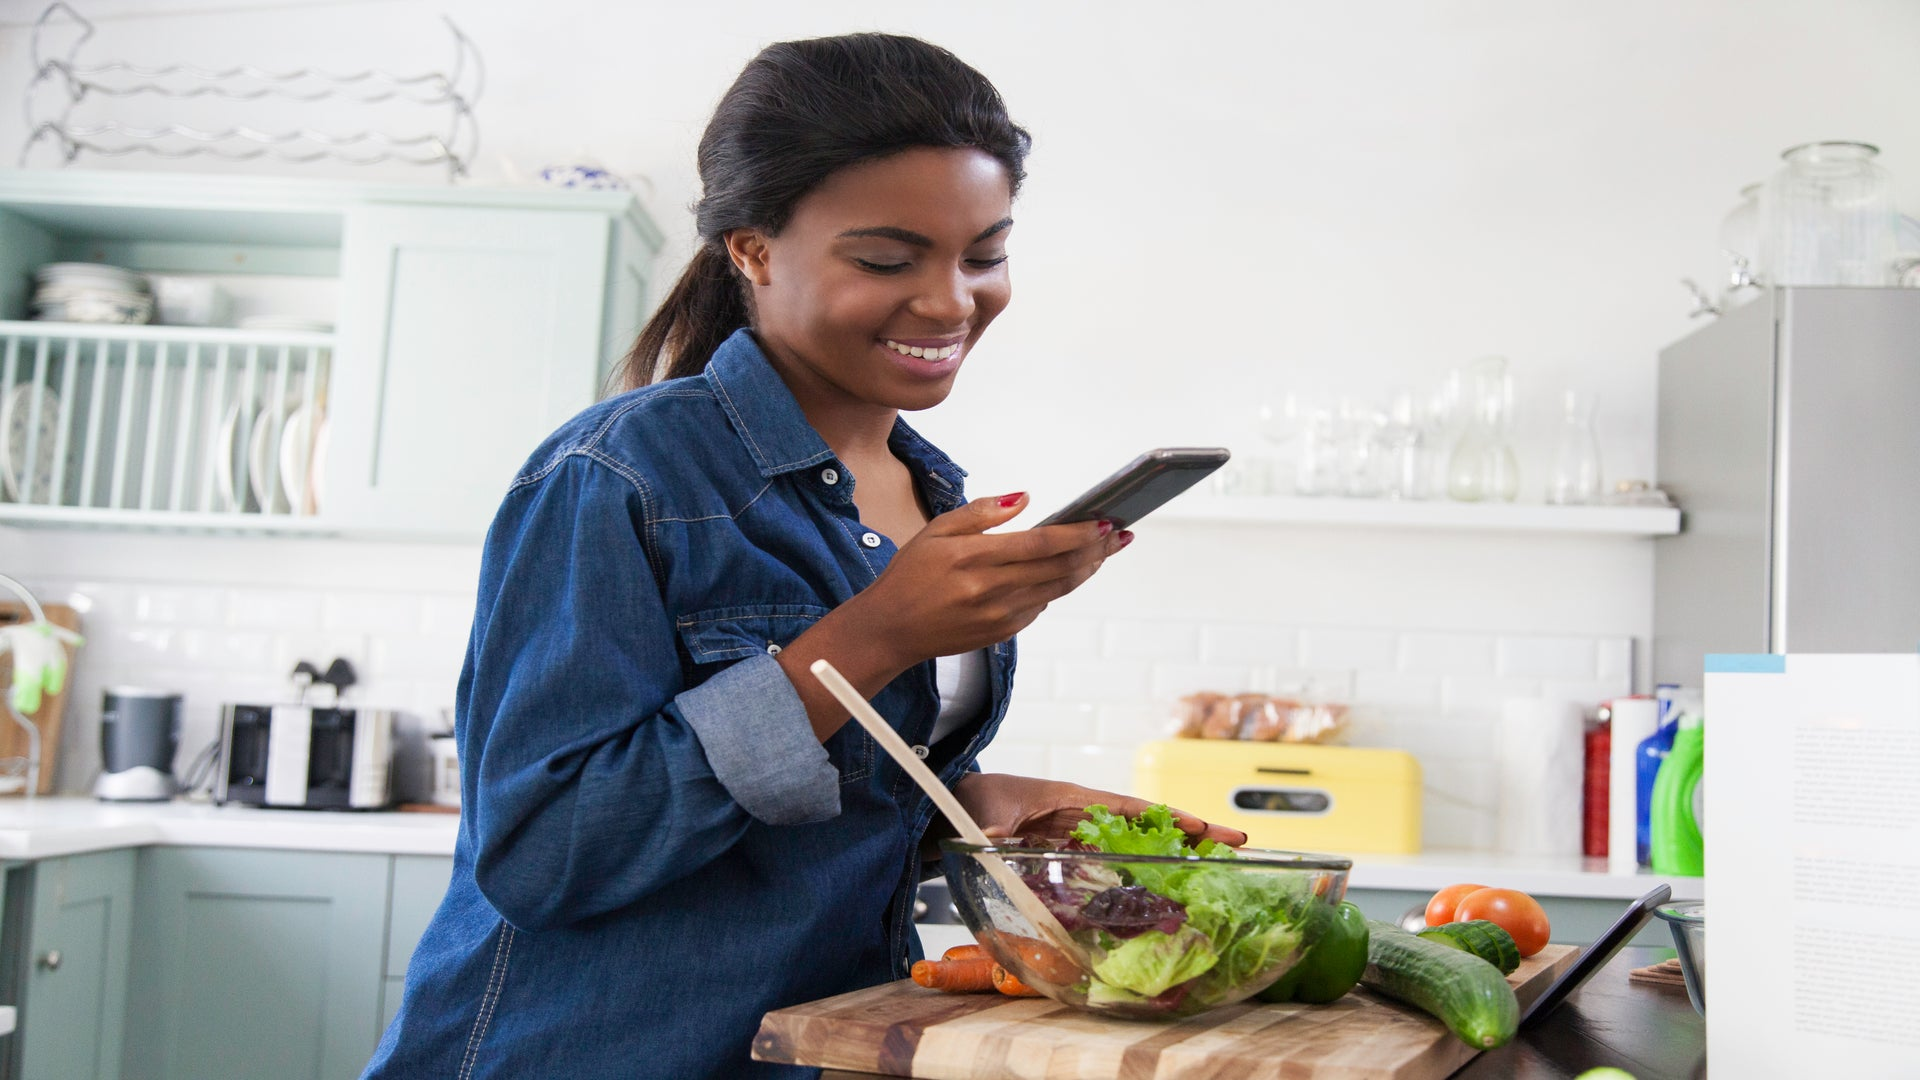 The Upgrade: 3 Apps To Help You Eat Healthy and Get Your Body Right